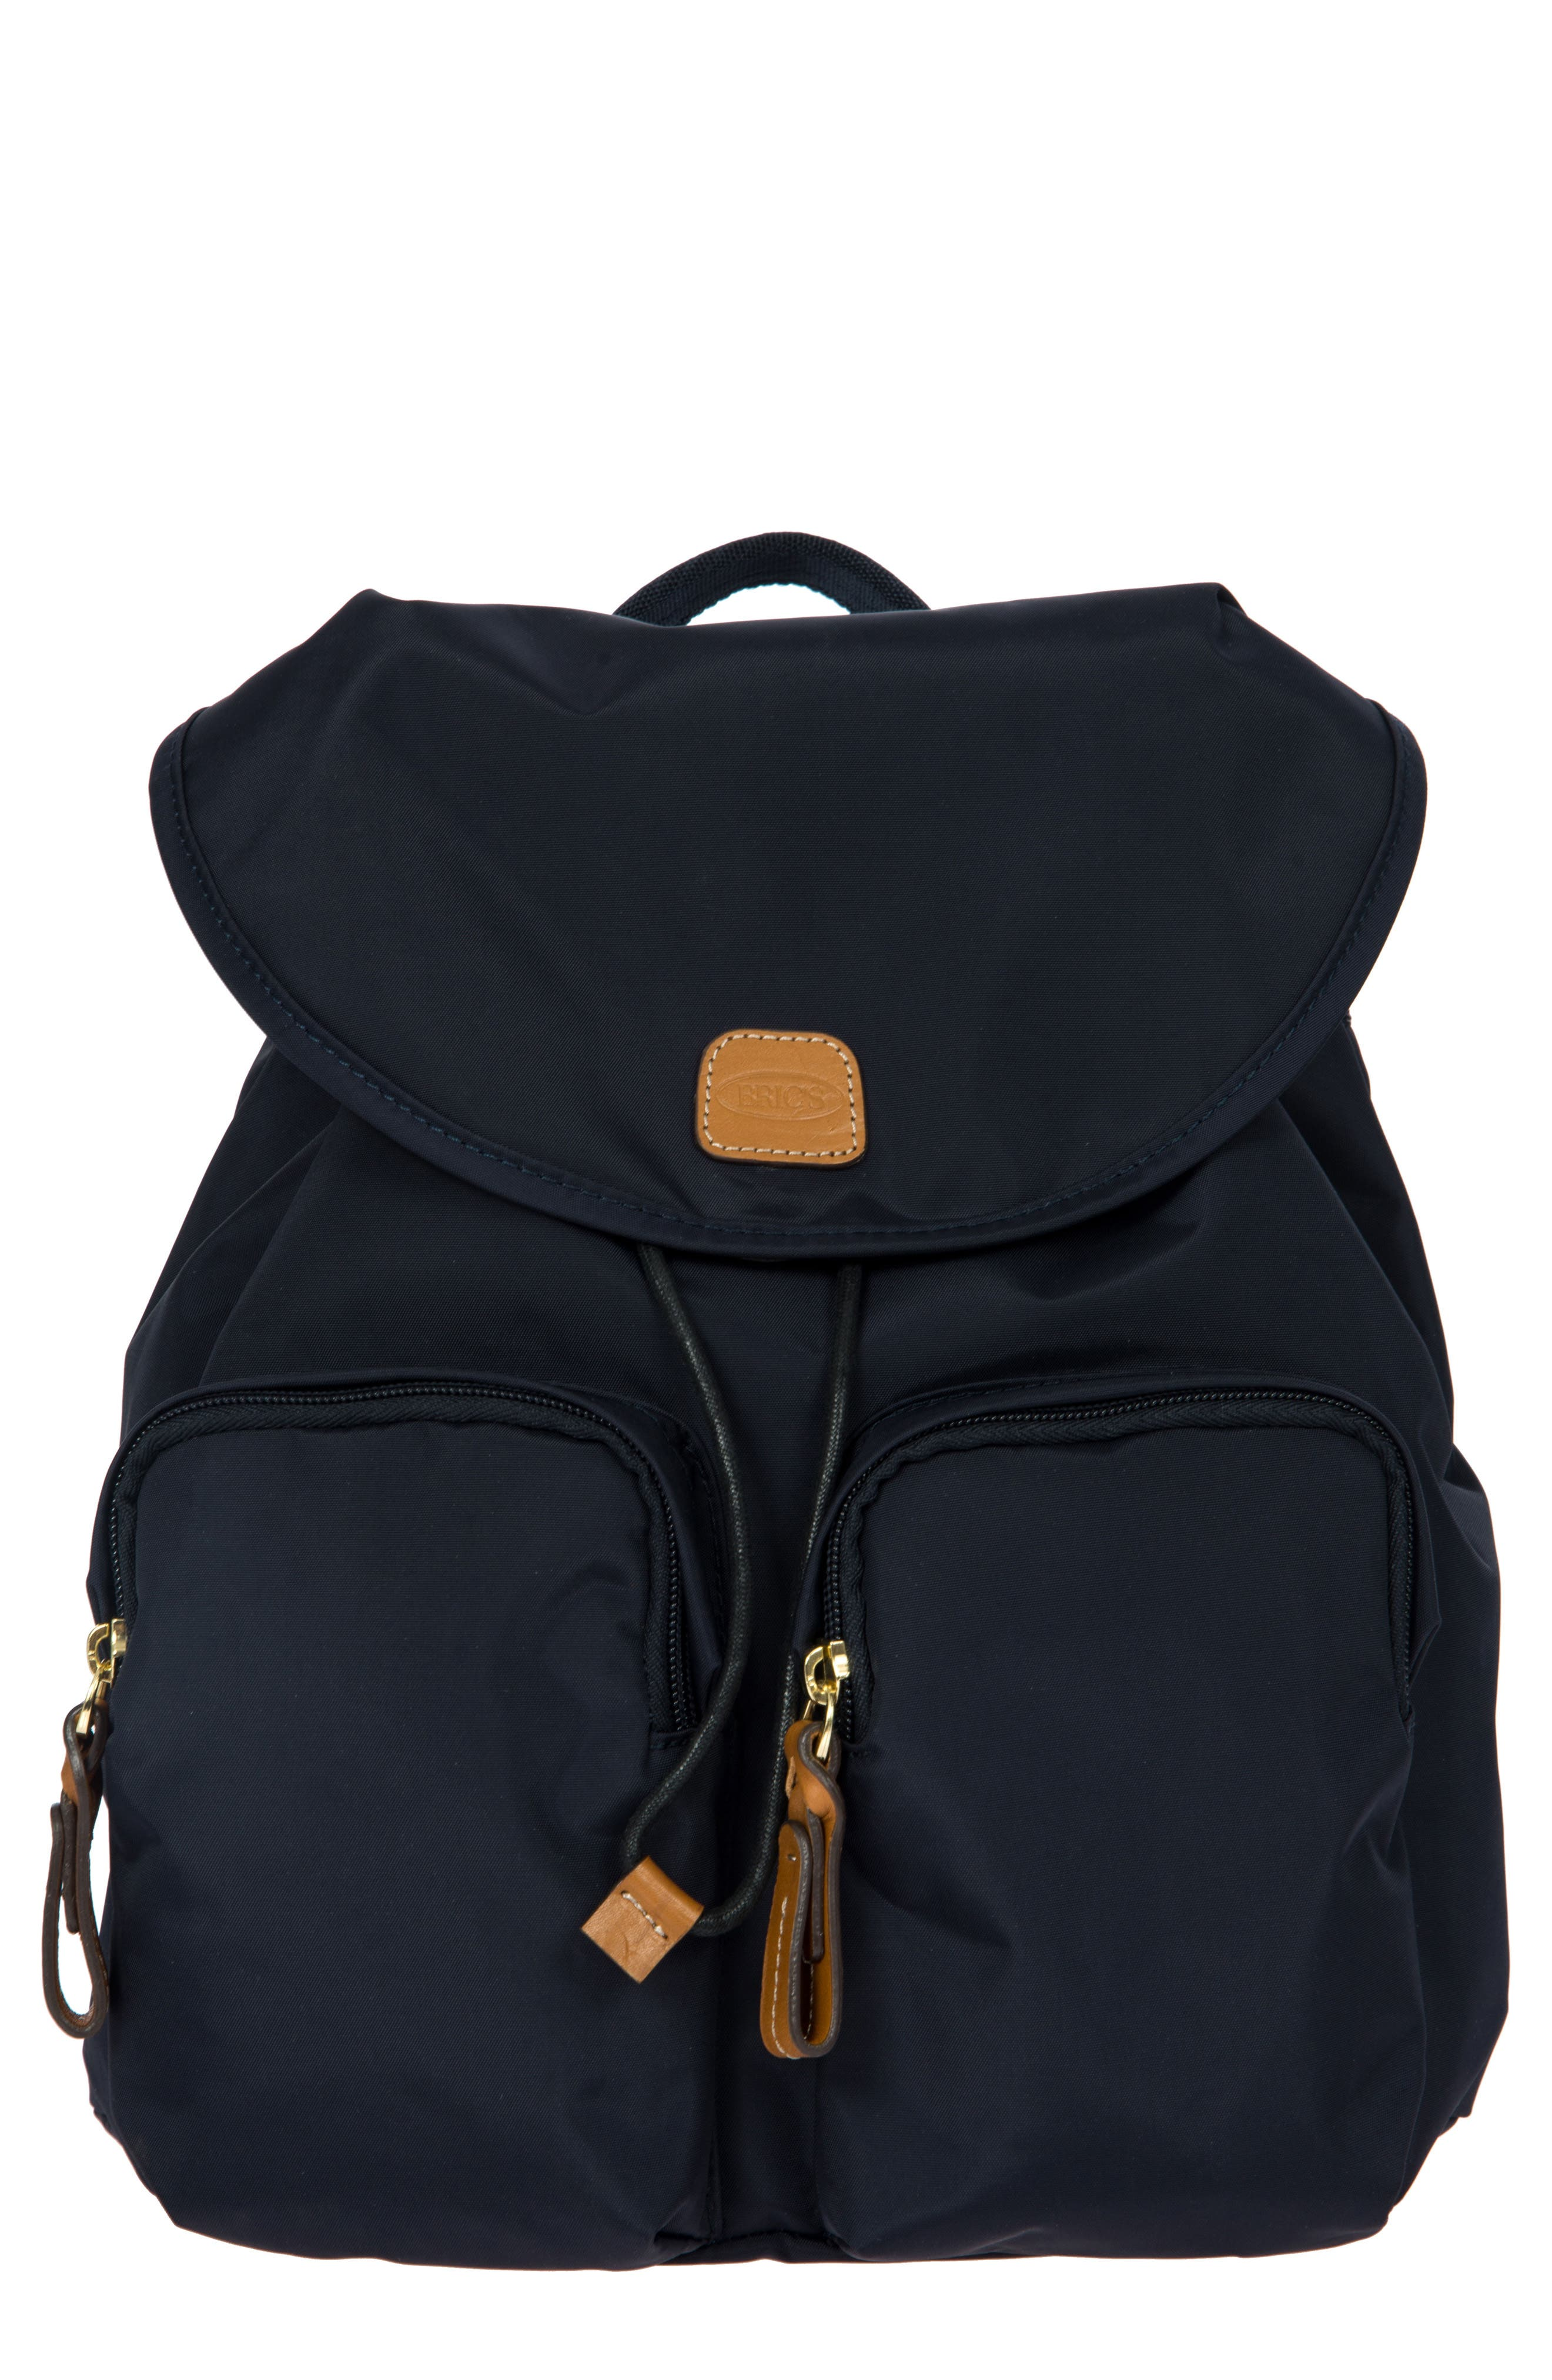 BRIC'S X-Travel City Backpack - Blue in Navy